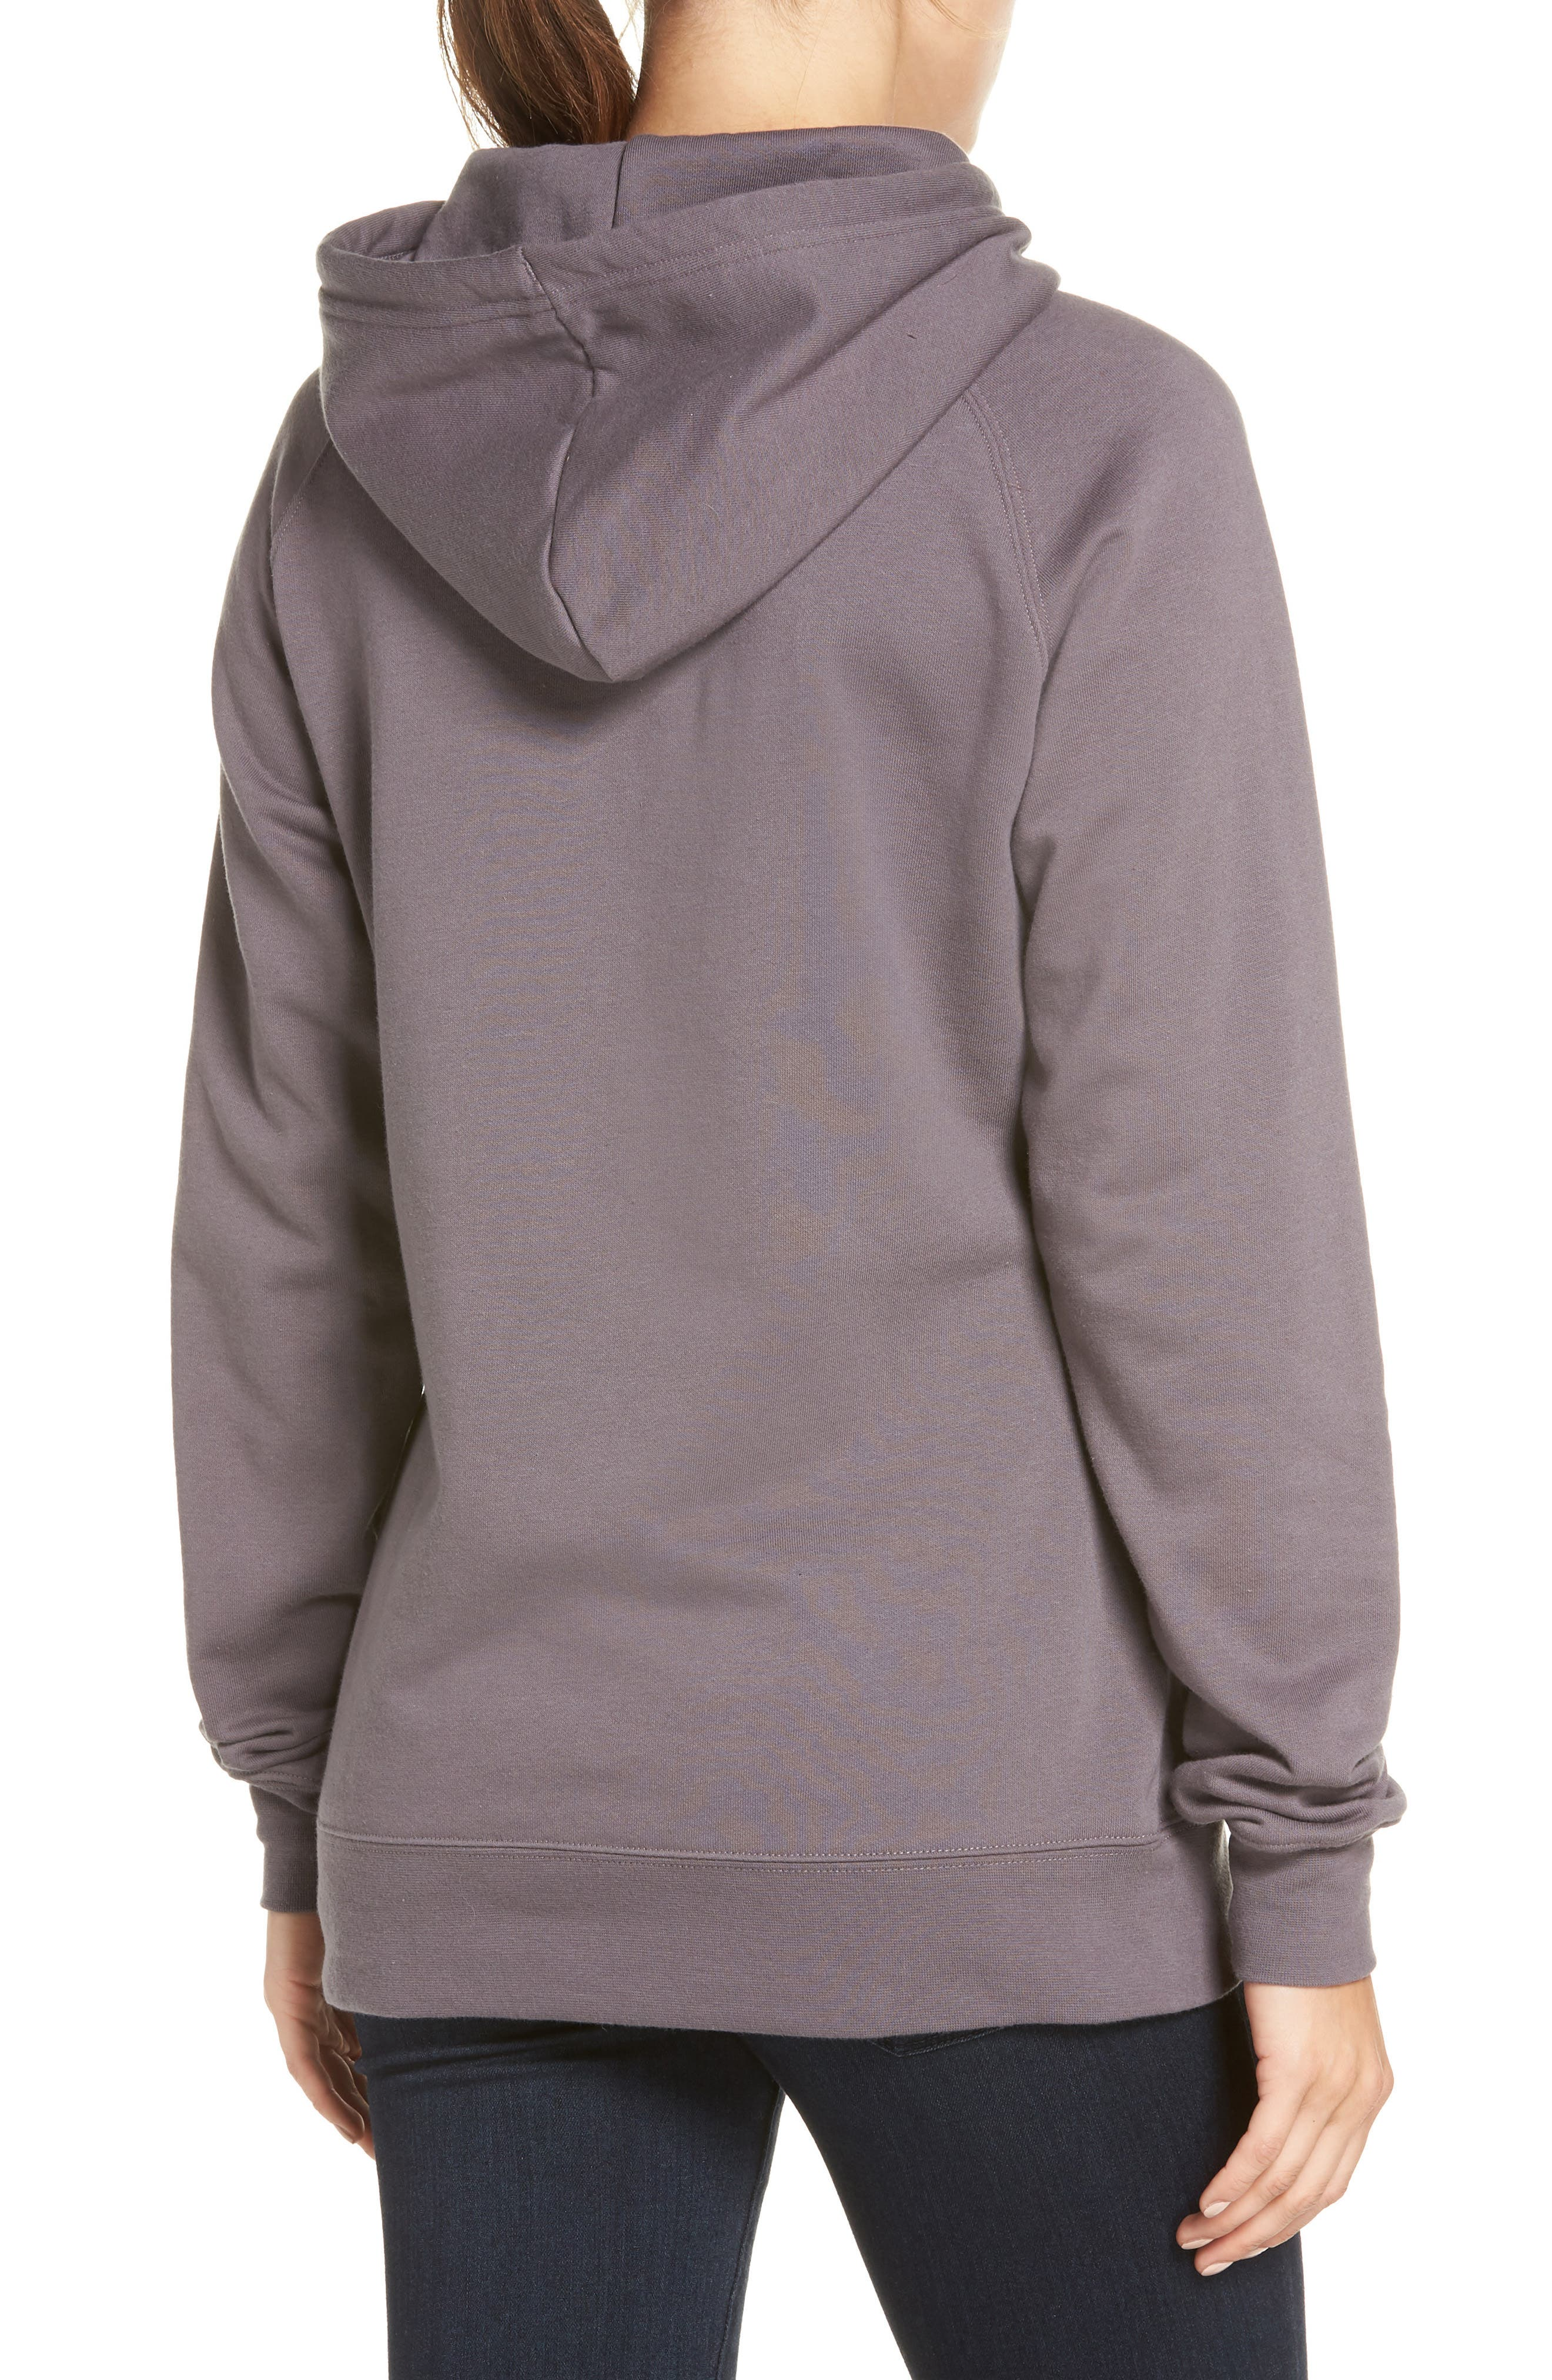 THE NORTH FACE,                             Edge to Edge Logo Hoodie Sweatshirt,                             Alternate thumbnail 2, color,                             023